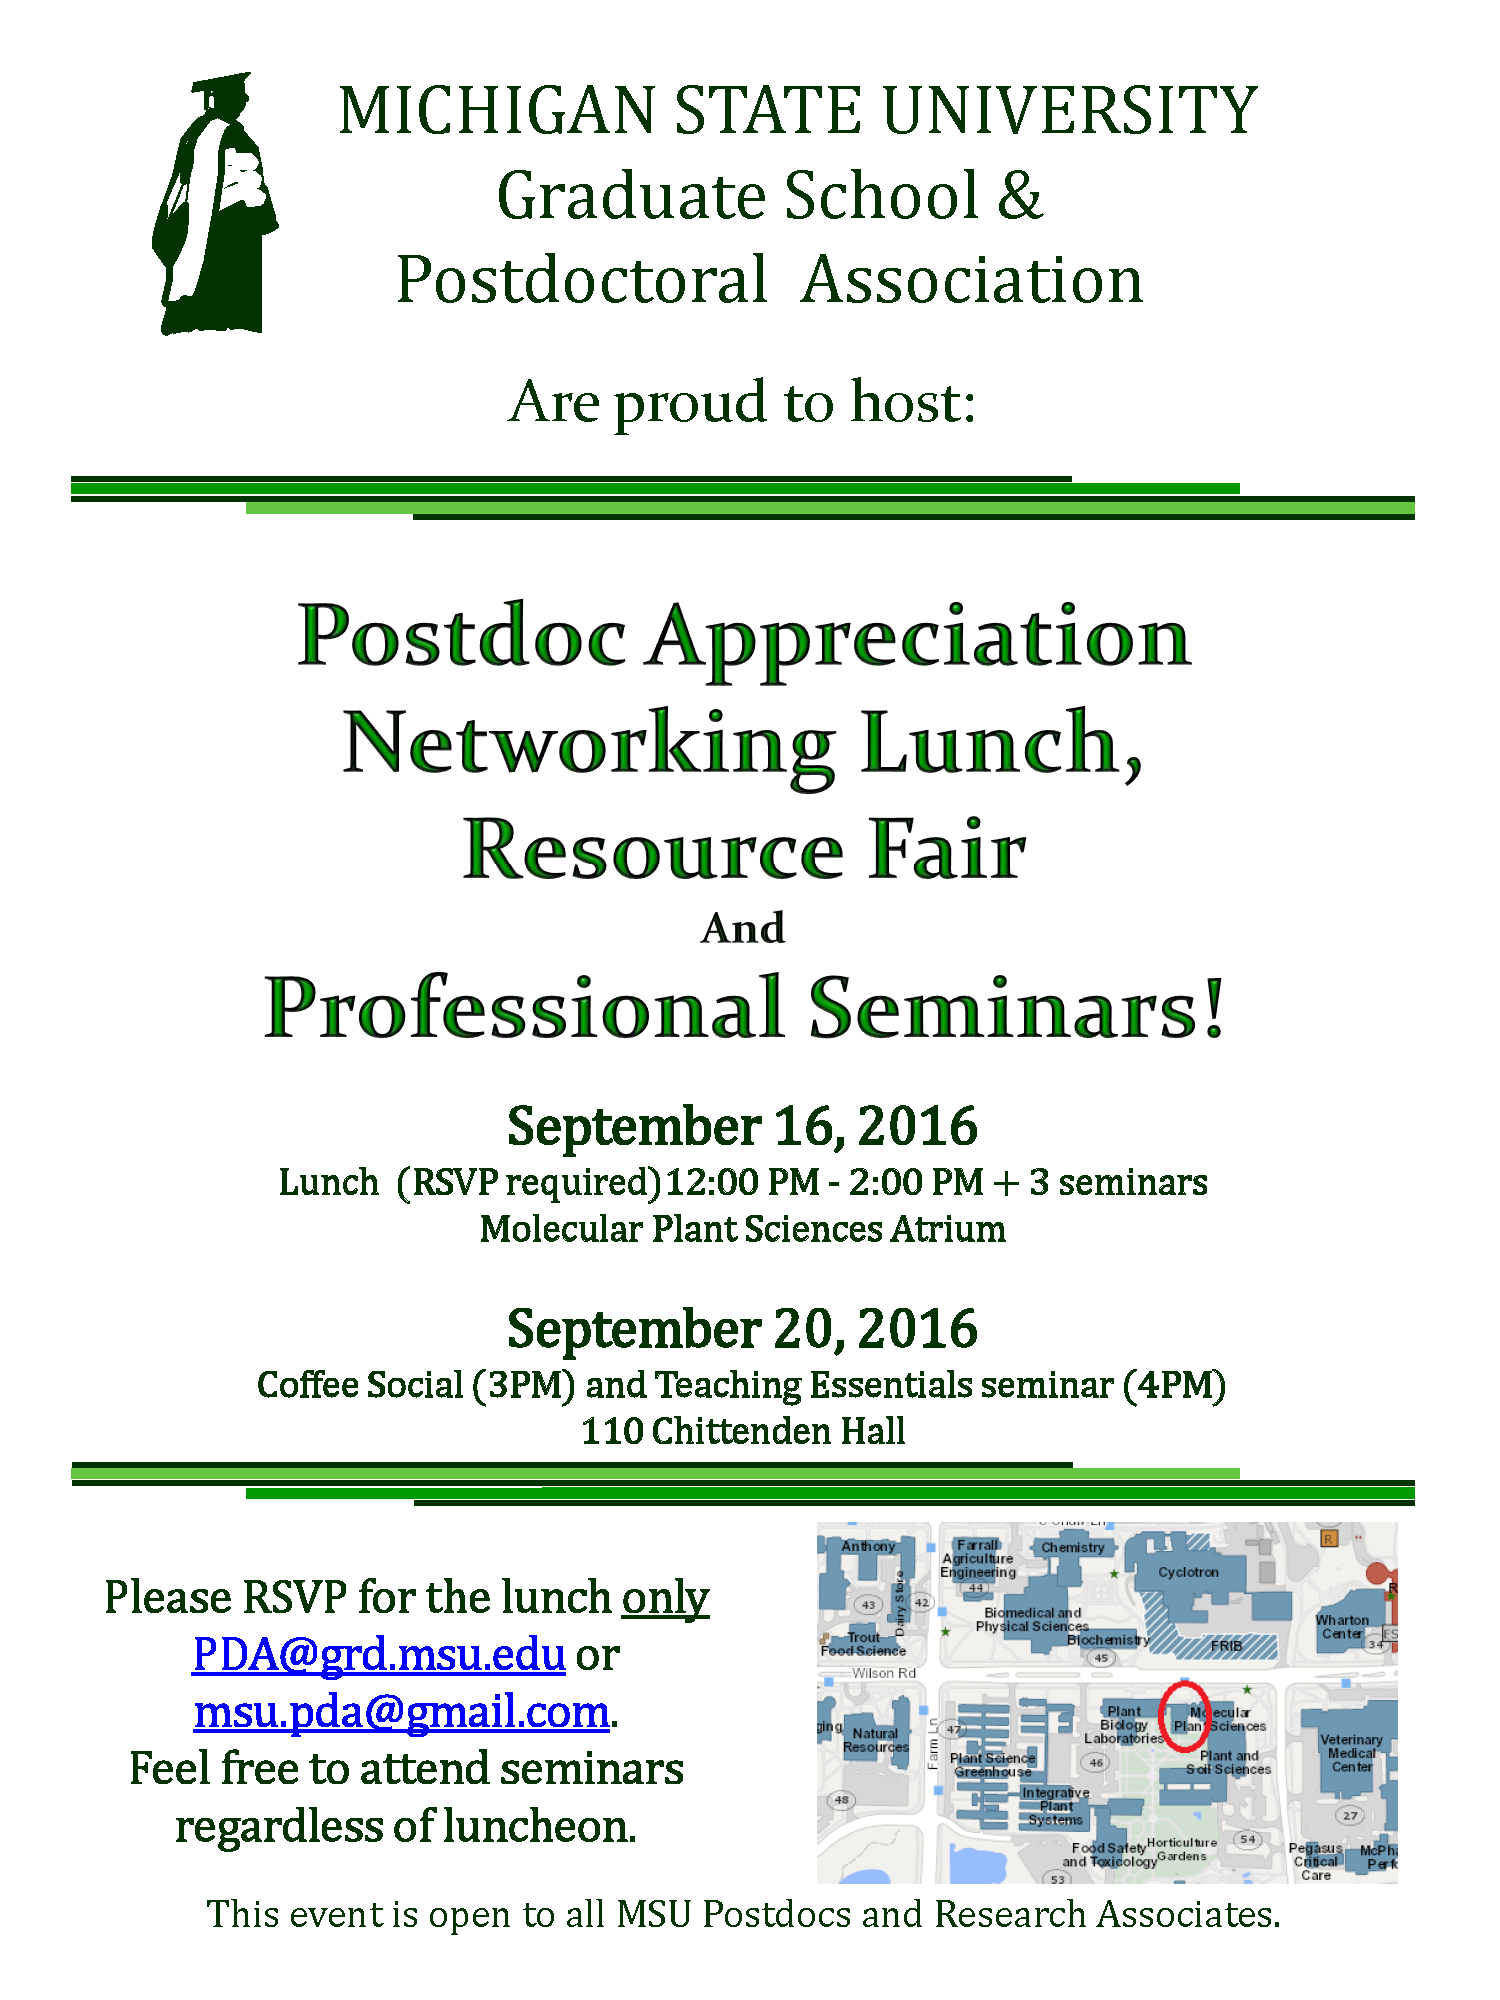 Postdoc Appreciation Networking Lunch, Resource Fair